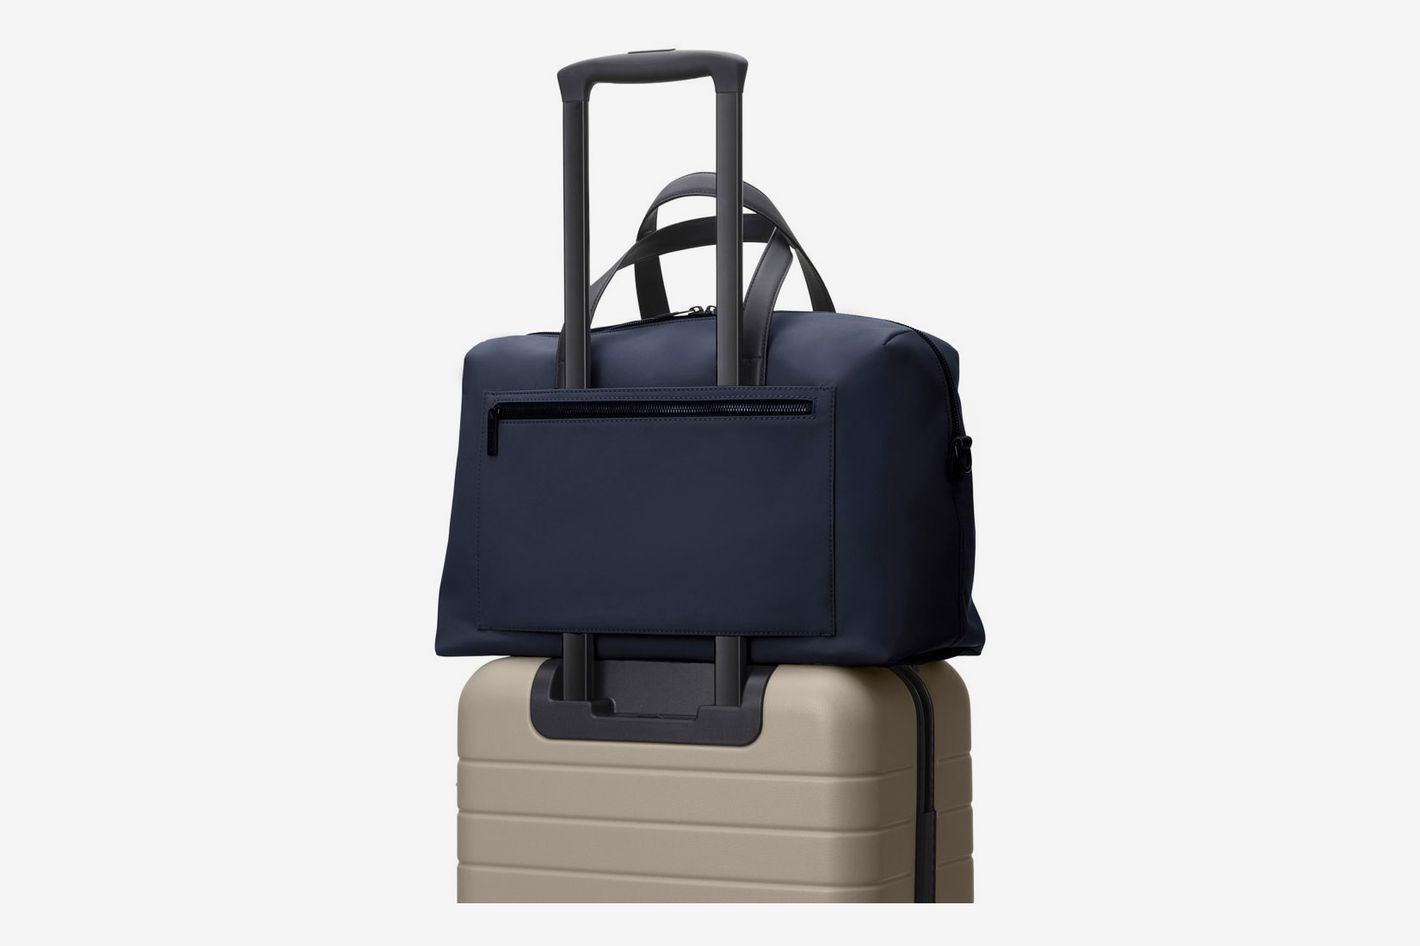 b769637be The 15 Best Personal Item Carry-on Bags for Travel 2019